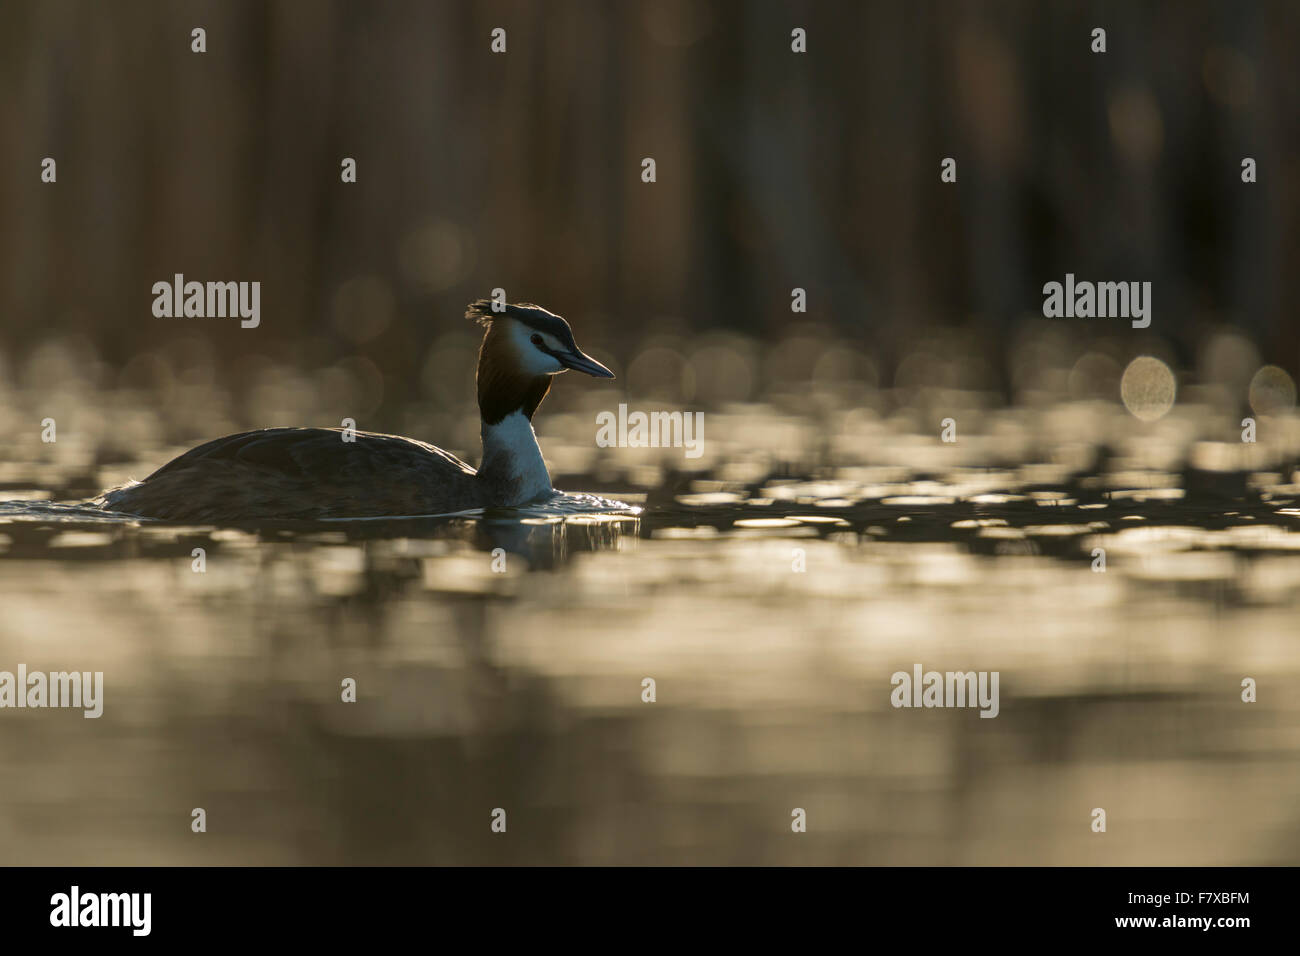 Great Crested Grebe / Great crestie ( Podiceps cristatus ) in between nice light reflections on water surface, backlight - Stock Image